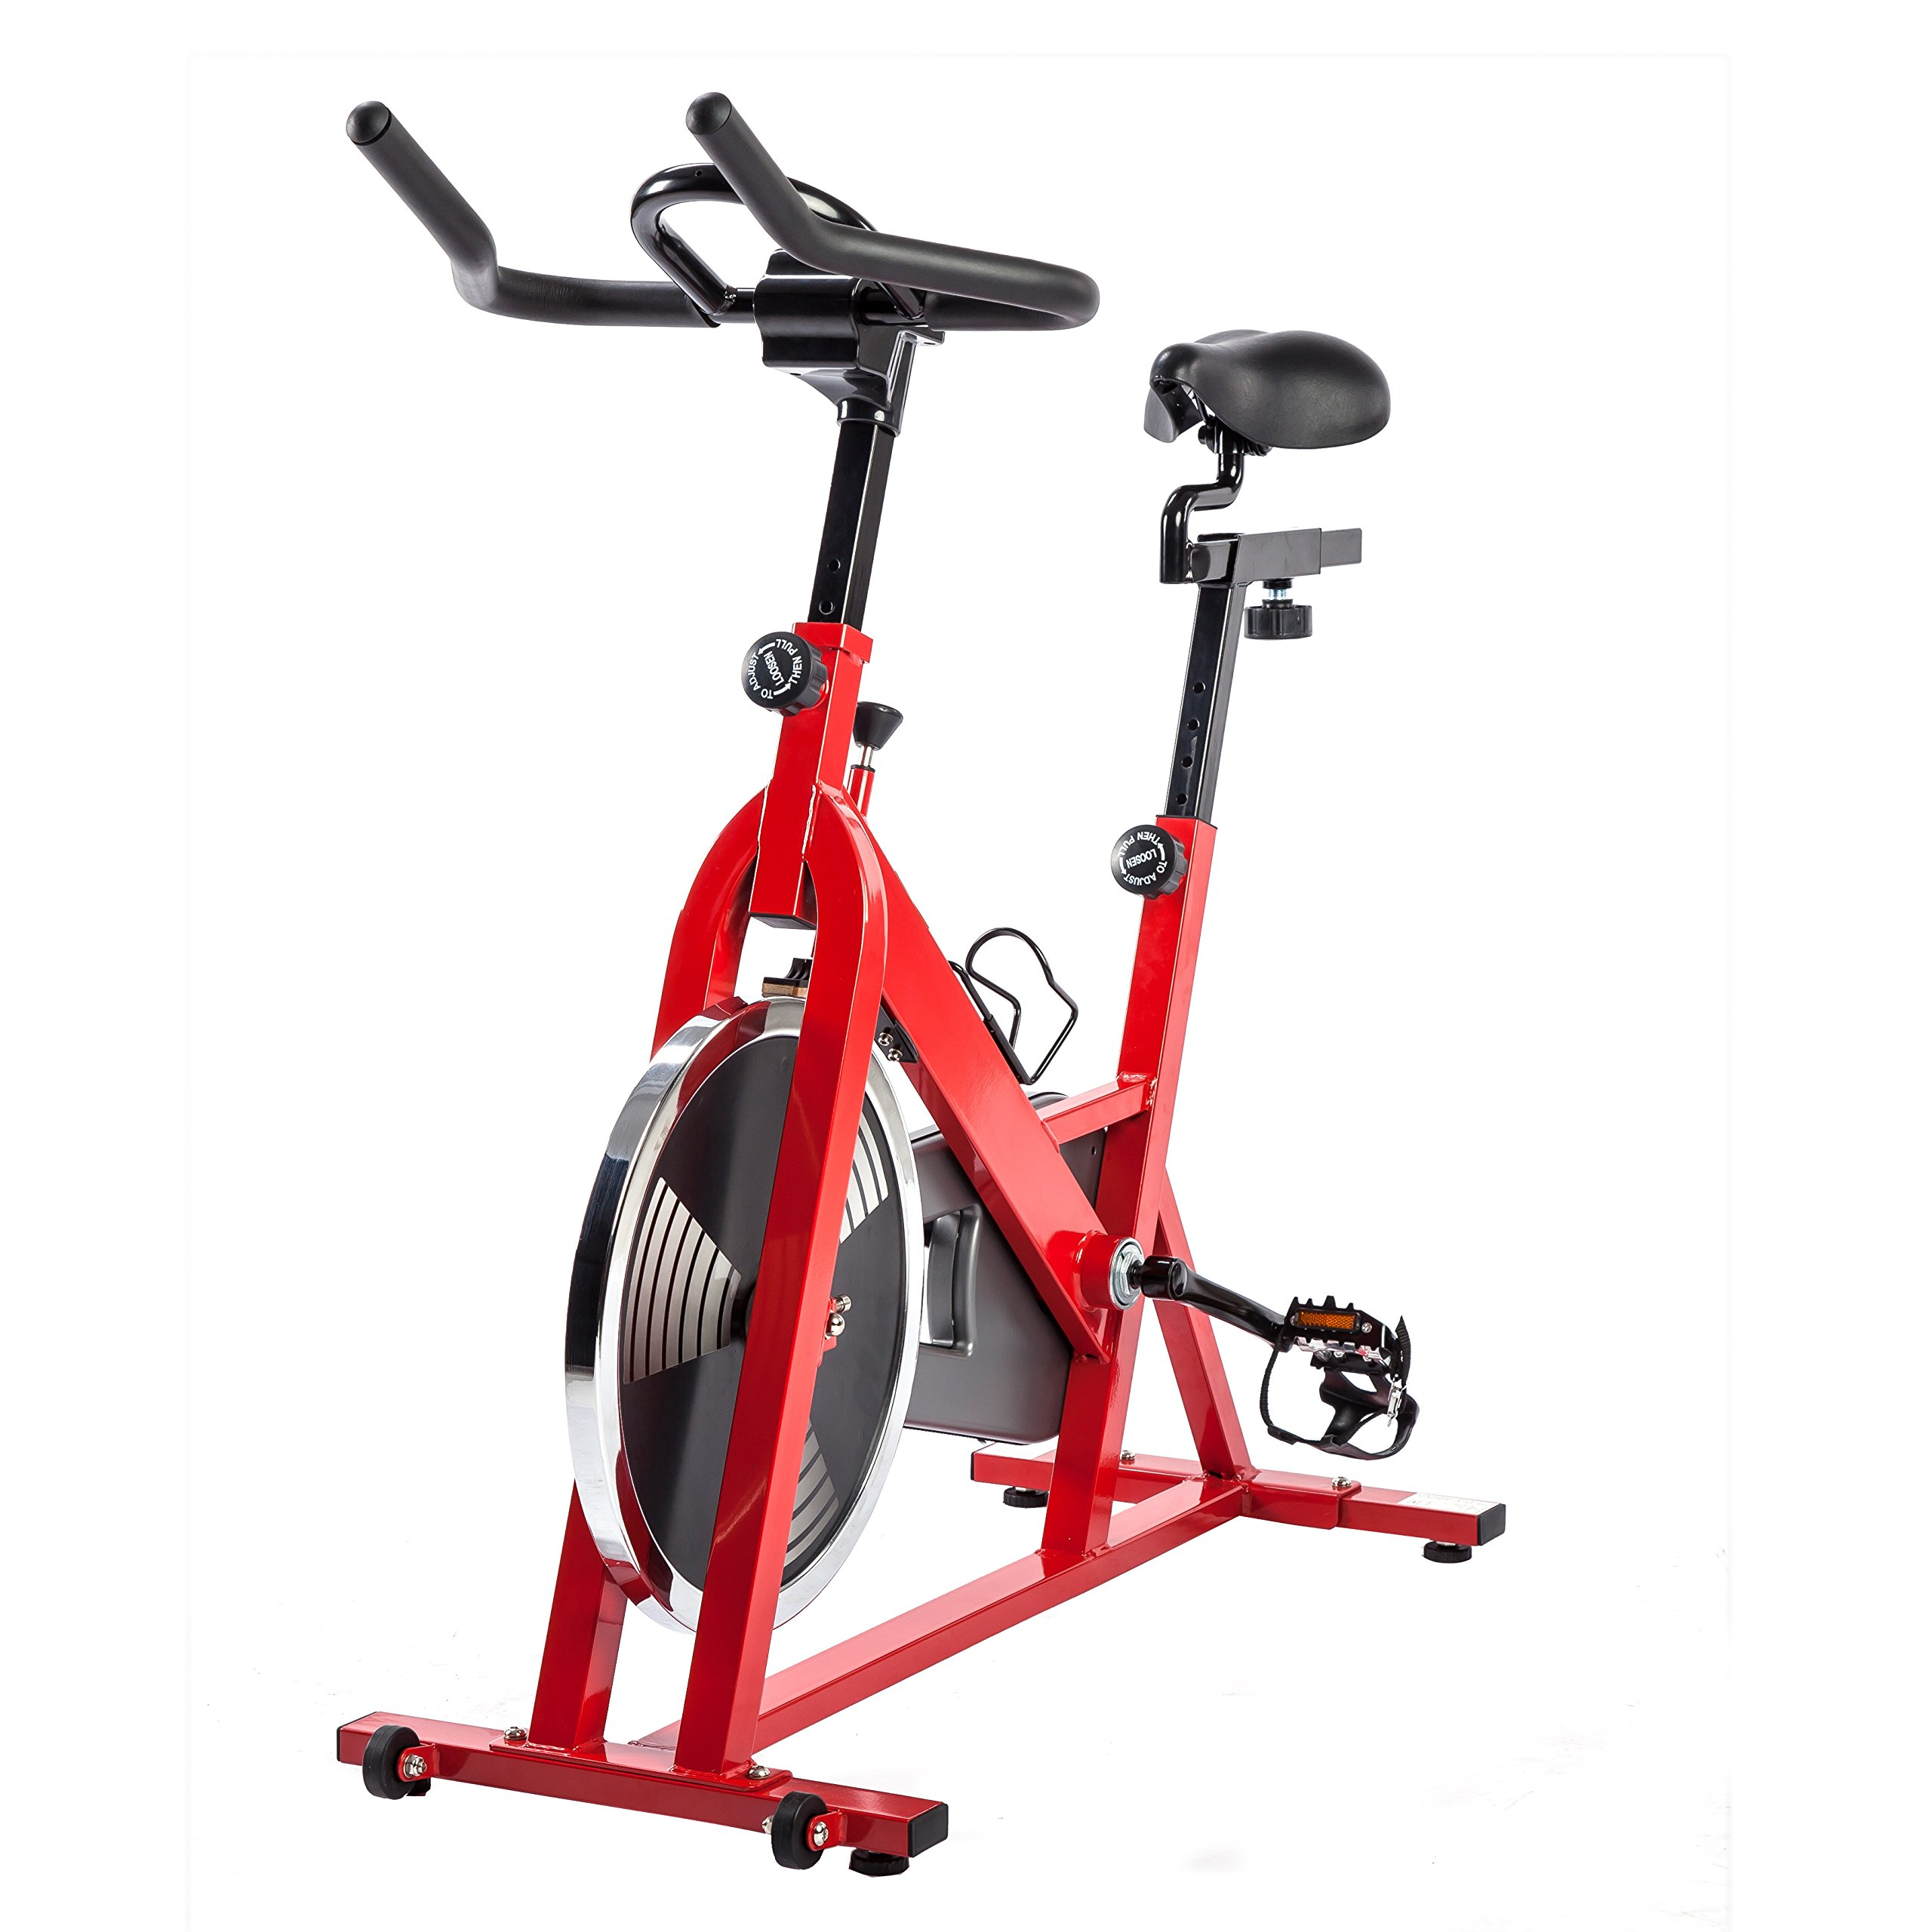 Sunny Health & Fitness SF-B1001 Indoor Cycling Bike, Red by Sunny Health & Fitness (Image #10)